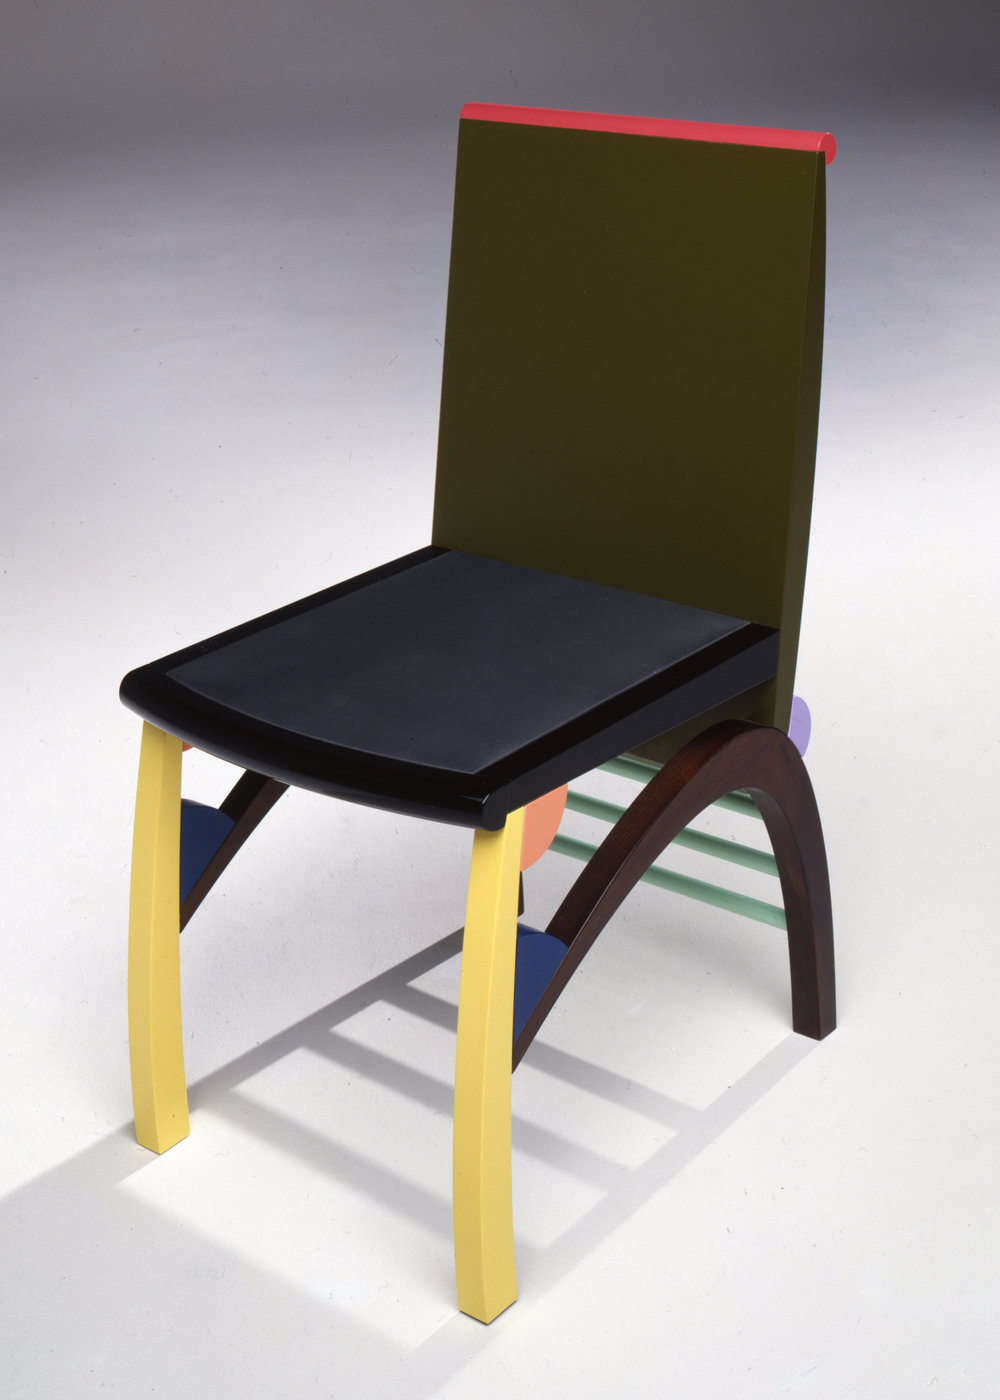 Chair by George Sowden at The Gallery Mourmans, Maastricht, 1990